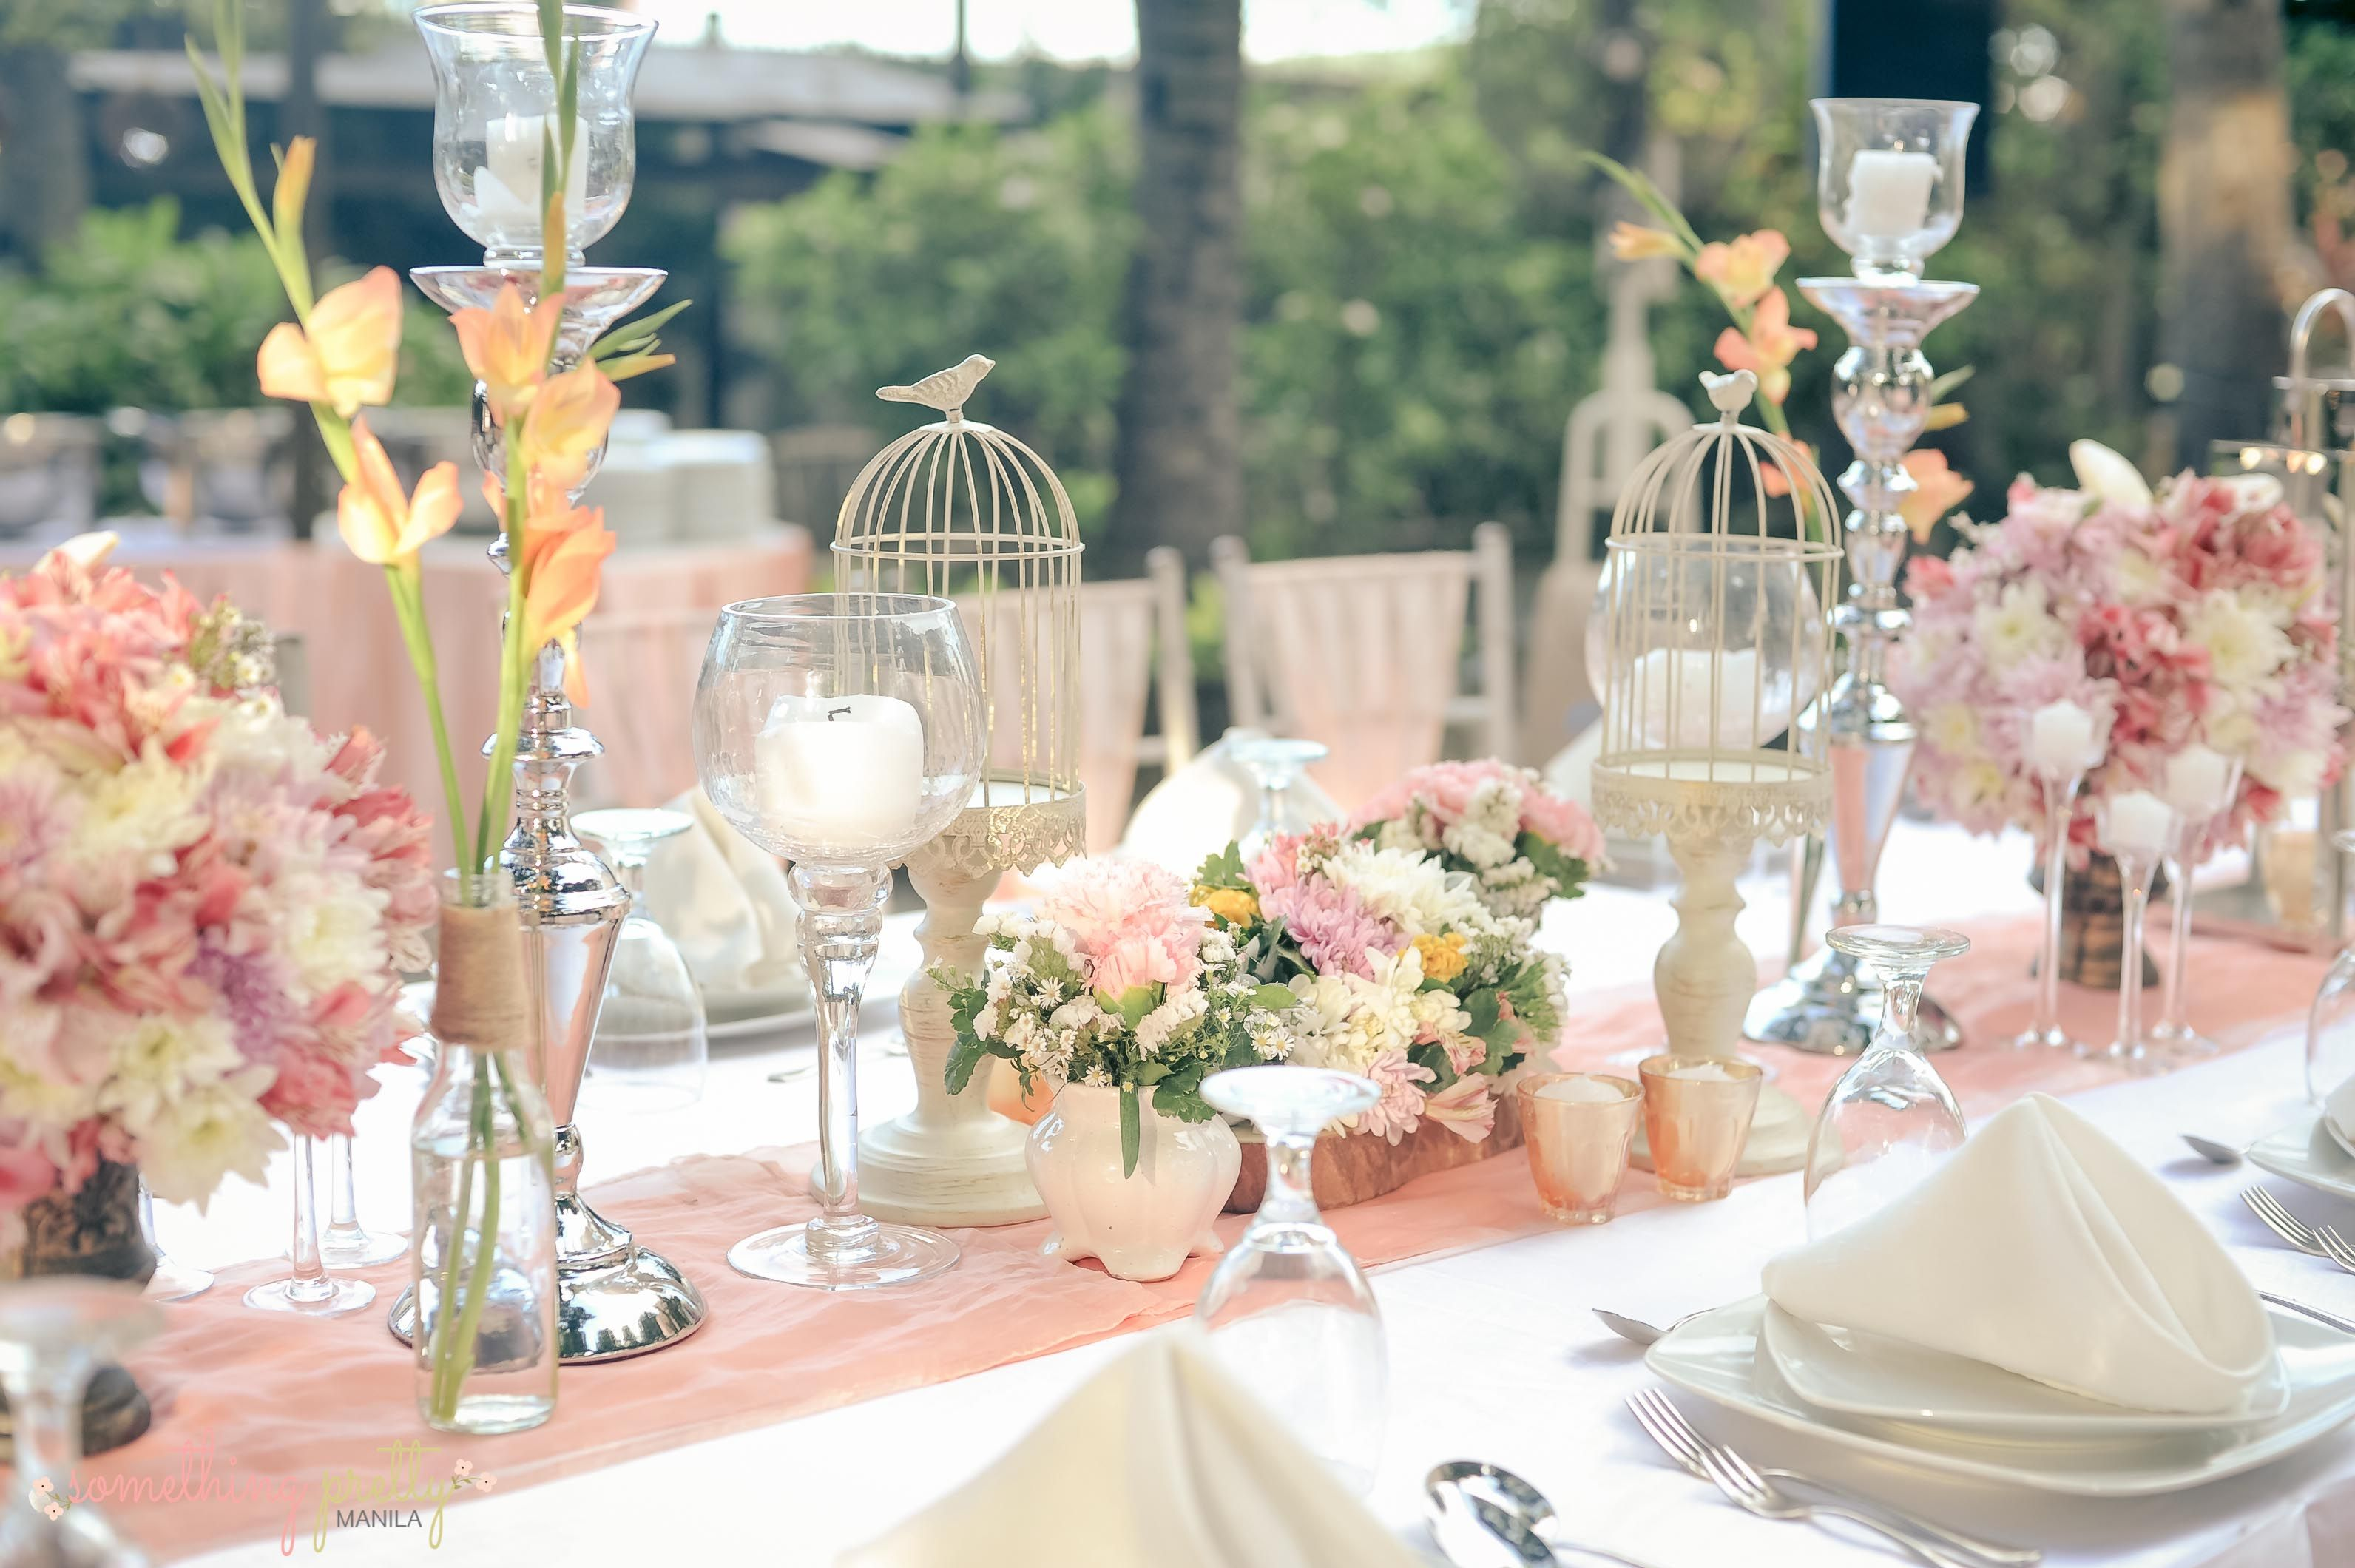 VIP Table Centerpiece Setting for Patrick and Iris\u0027 Rustic Wedding & VIP Table Centerpiece Setting for Patrick a\u2026 | Weddings / Events by ...